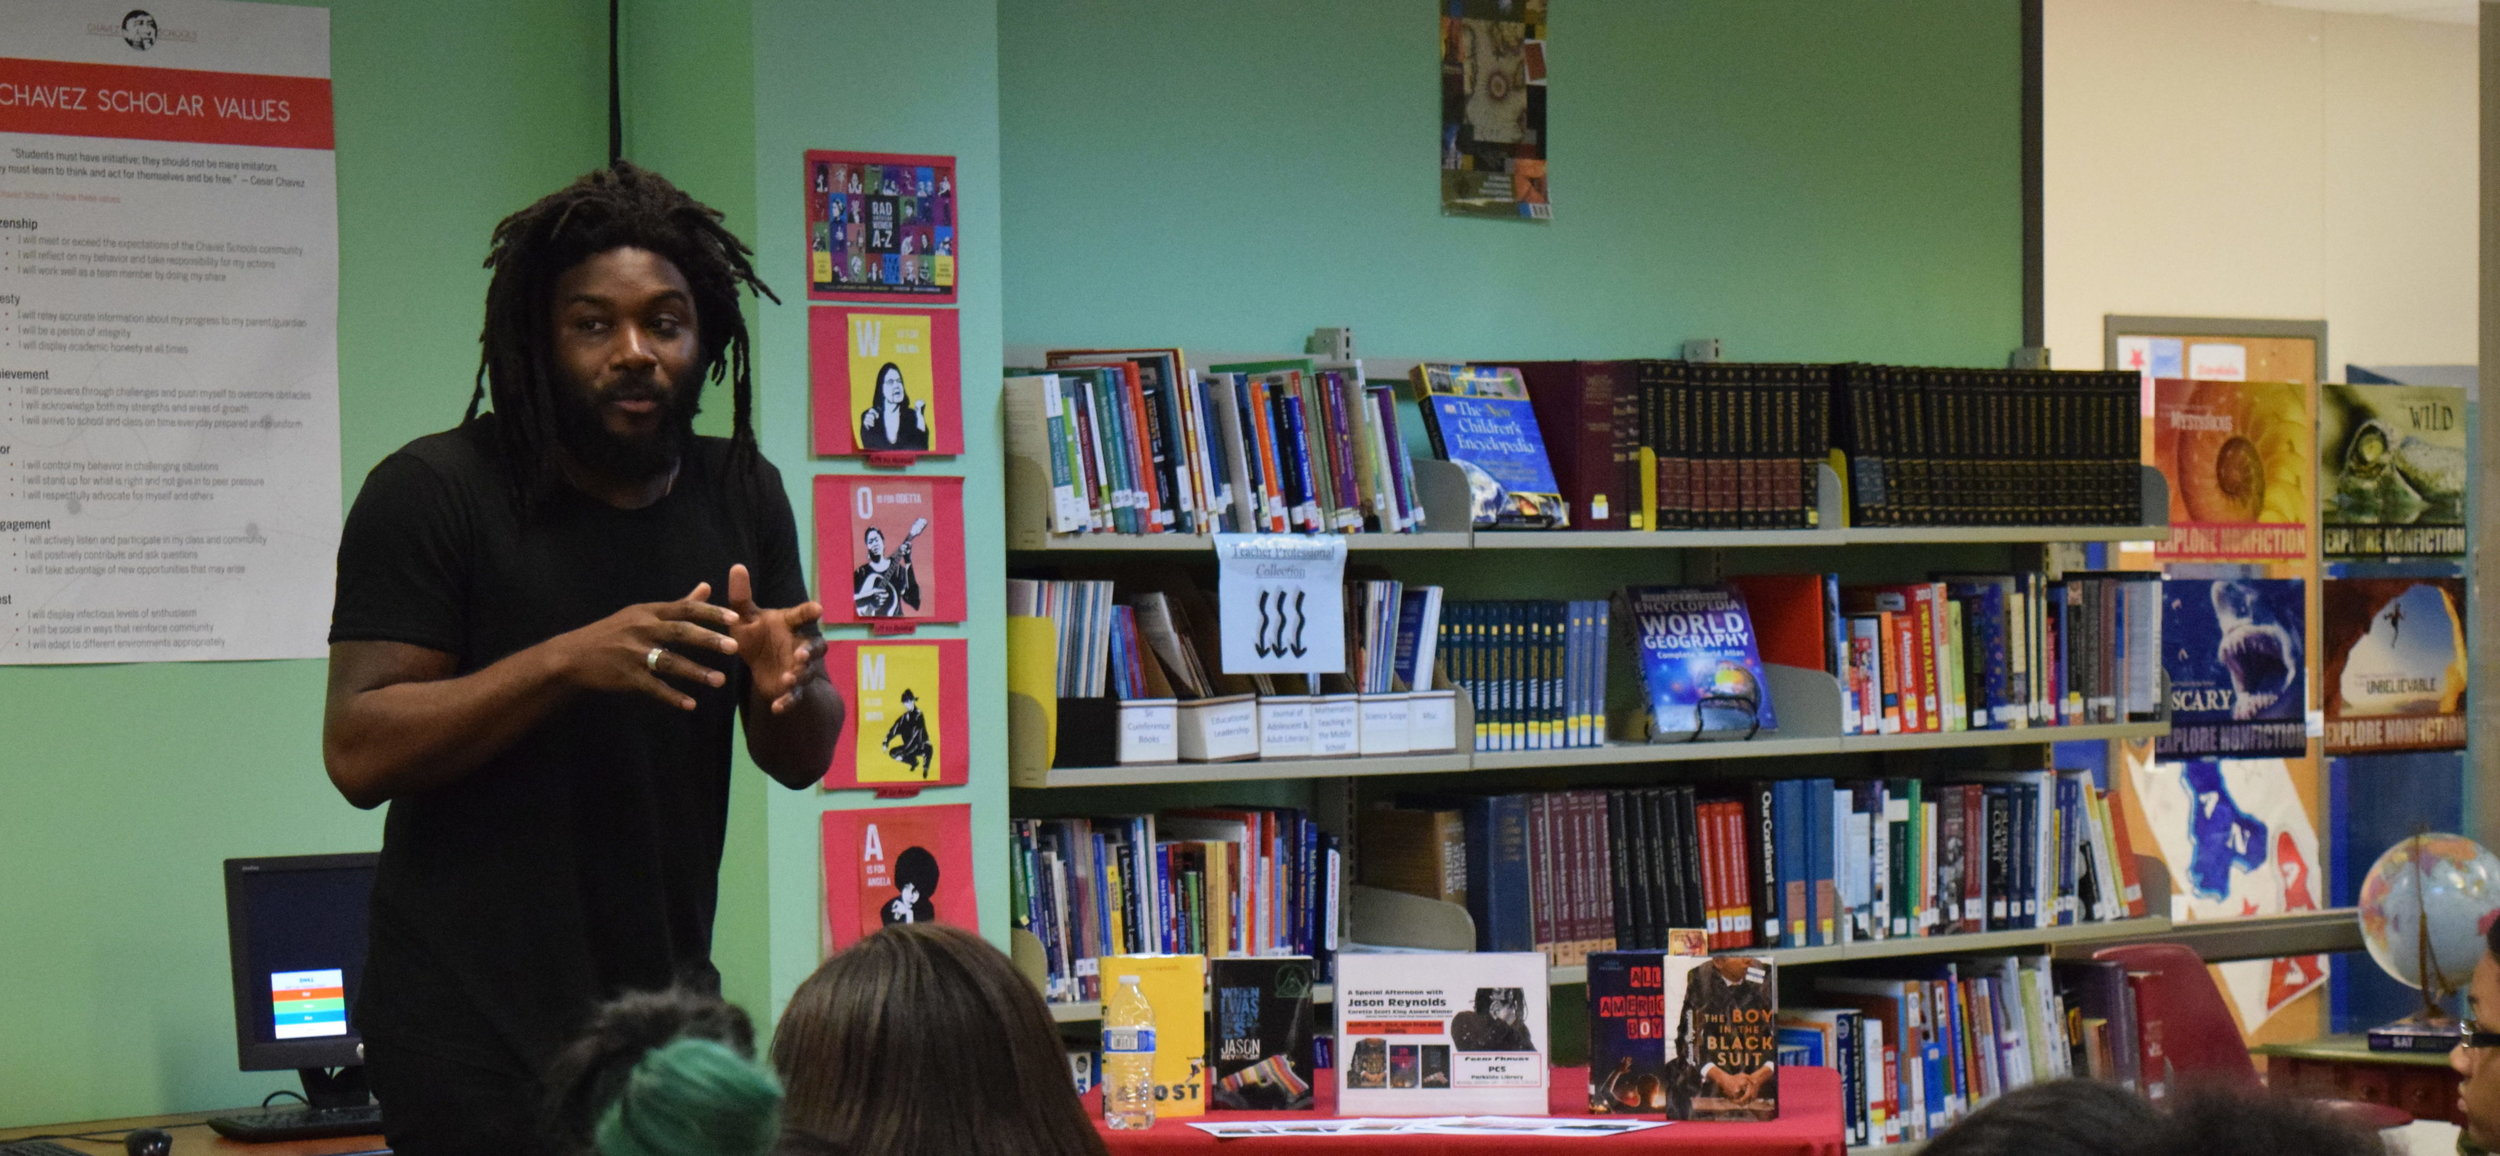 Washington-DC-Jason-Reynolds-author-giving-presentation-2-e1511196848414-4096x1894.jpg